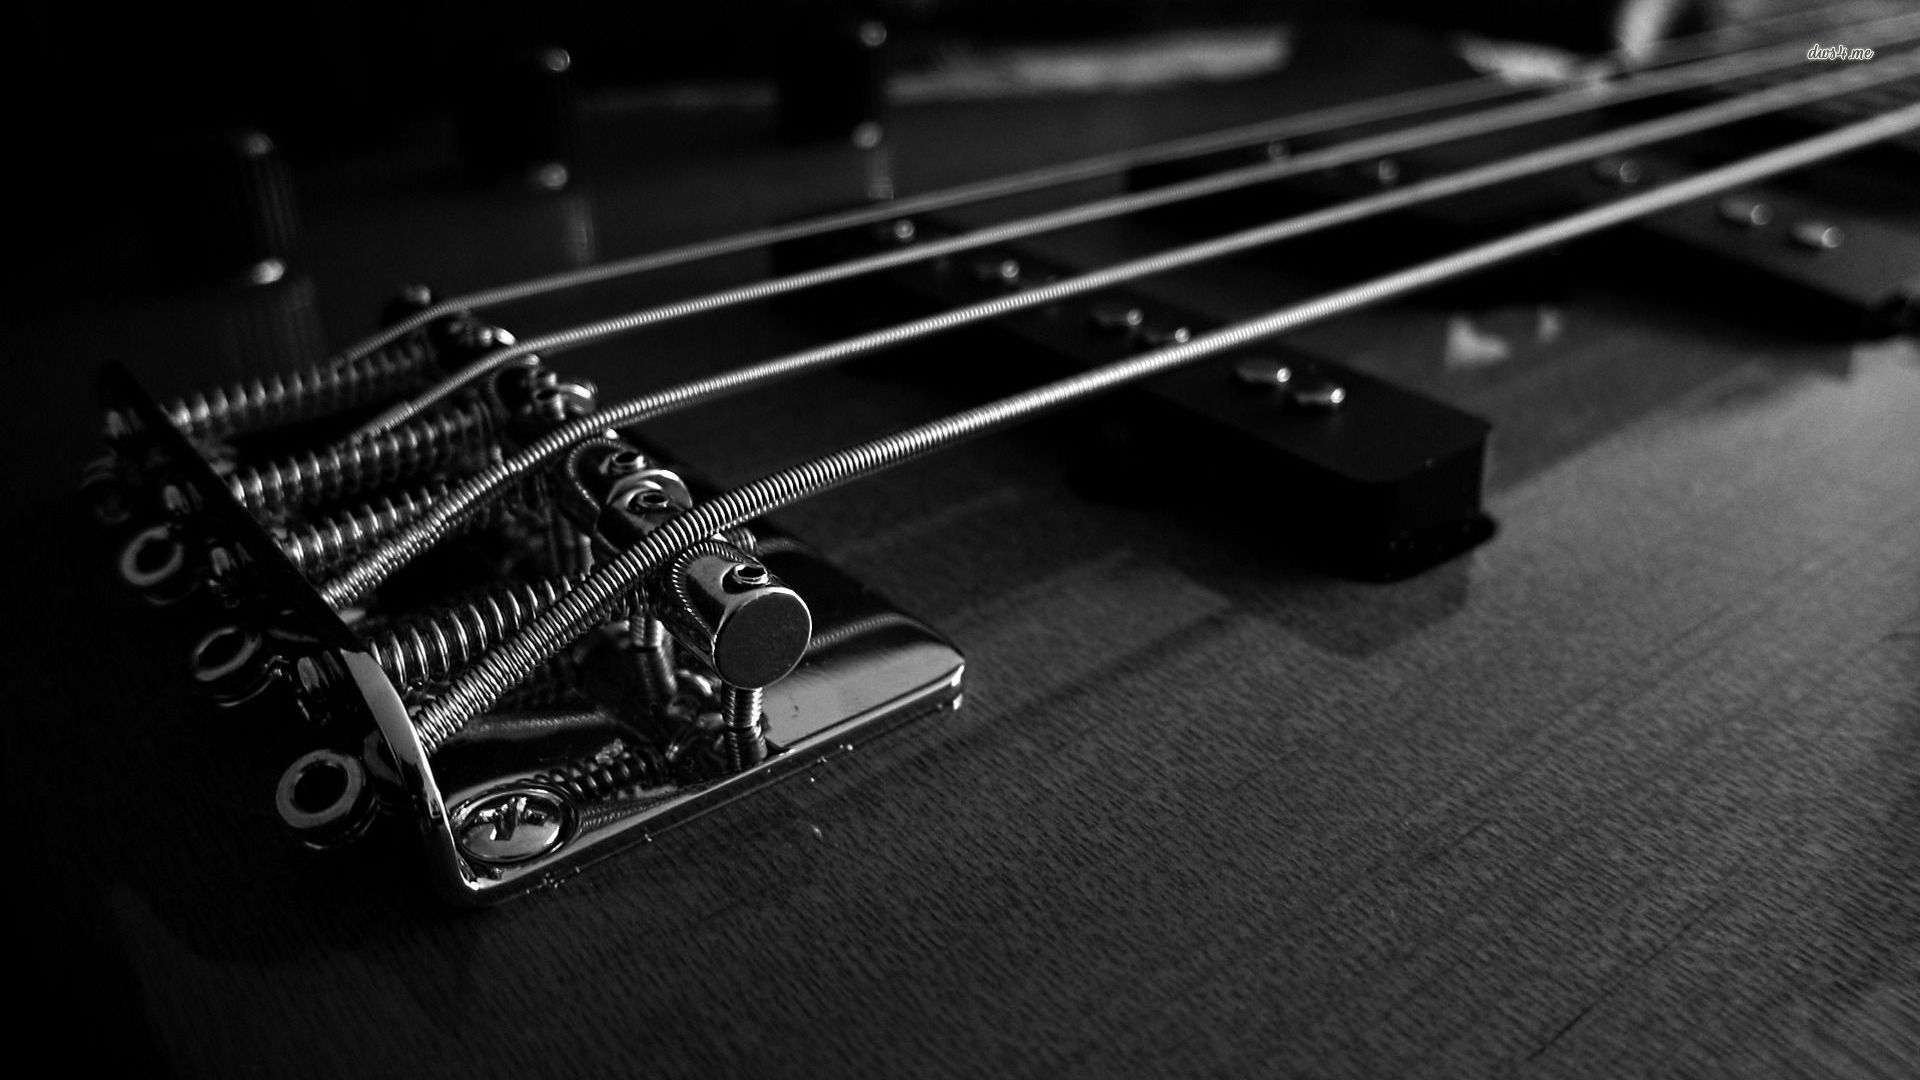 Bass Guitar Wallpaper Desktop - WallpaperSafari